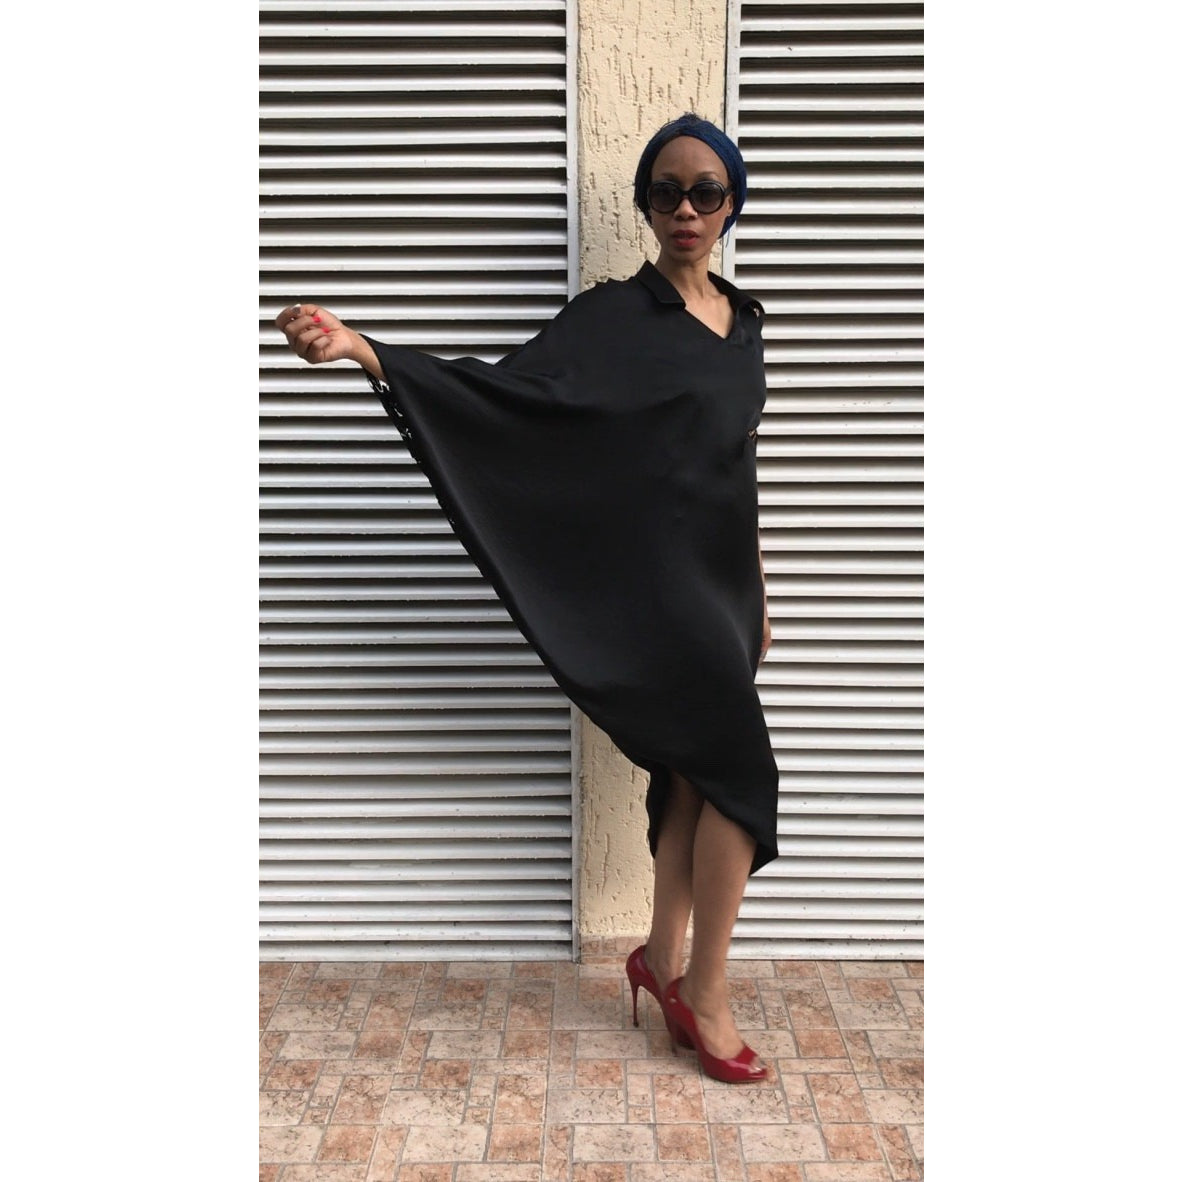 BLACK SARI KAFTAN DRESS, WITH LACE DETAIL